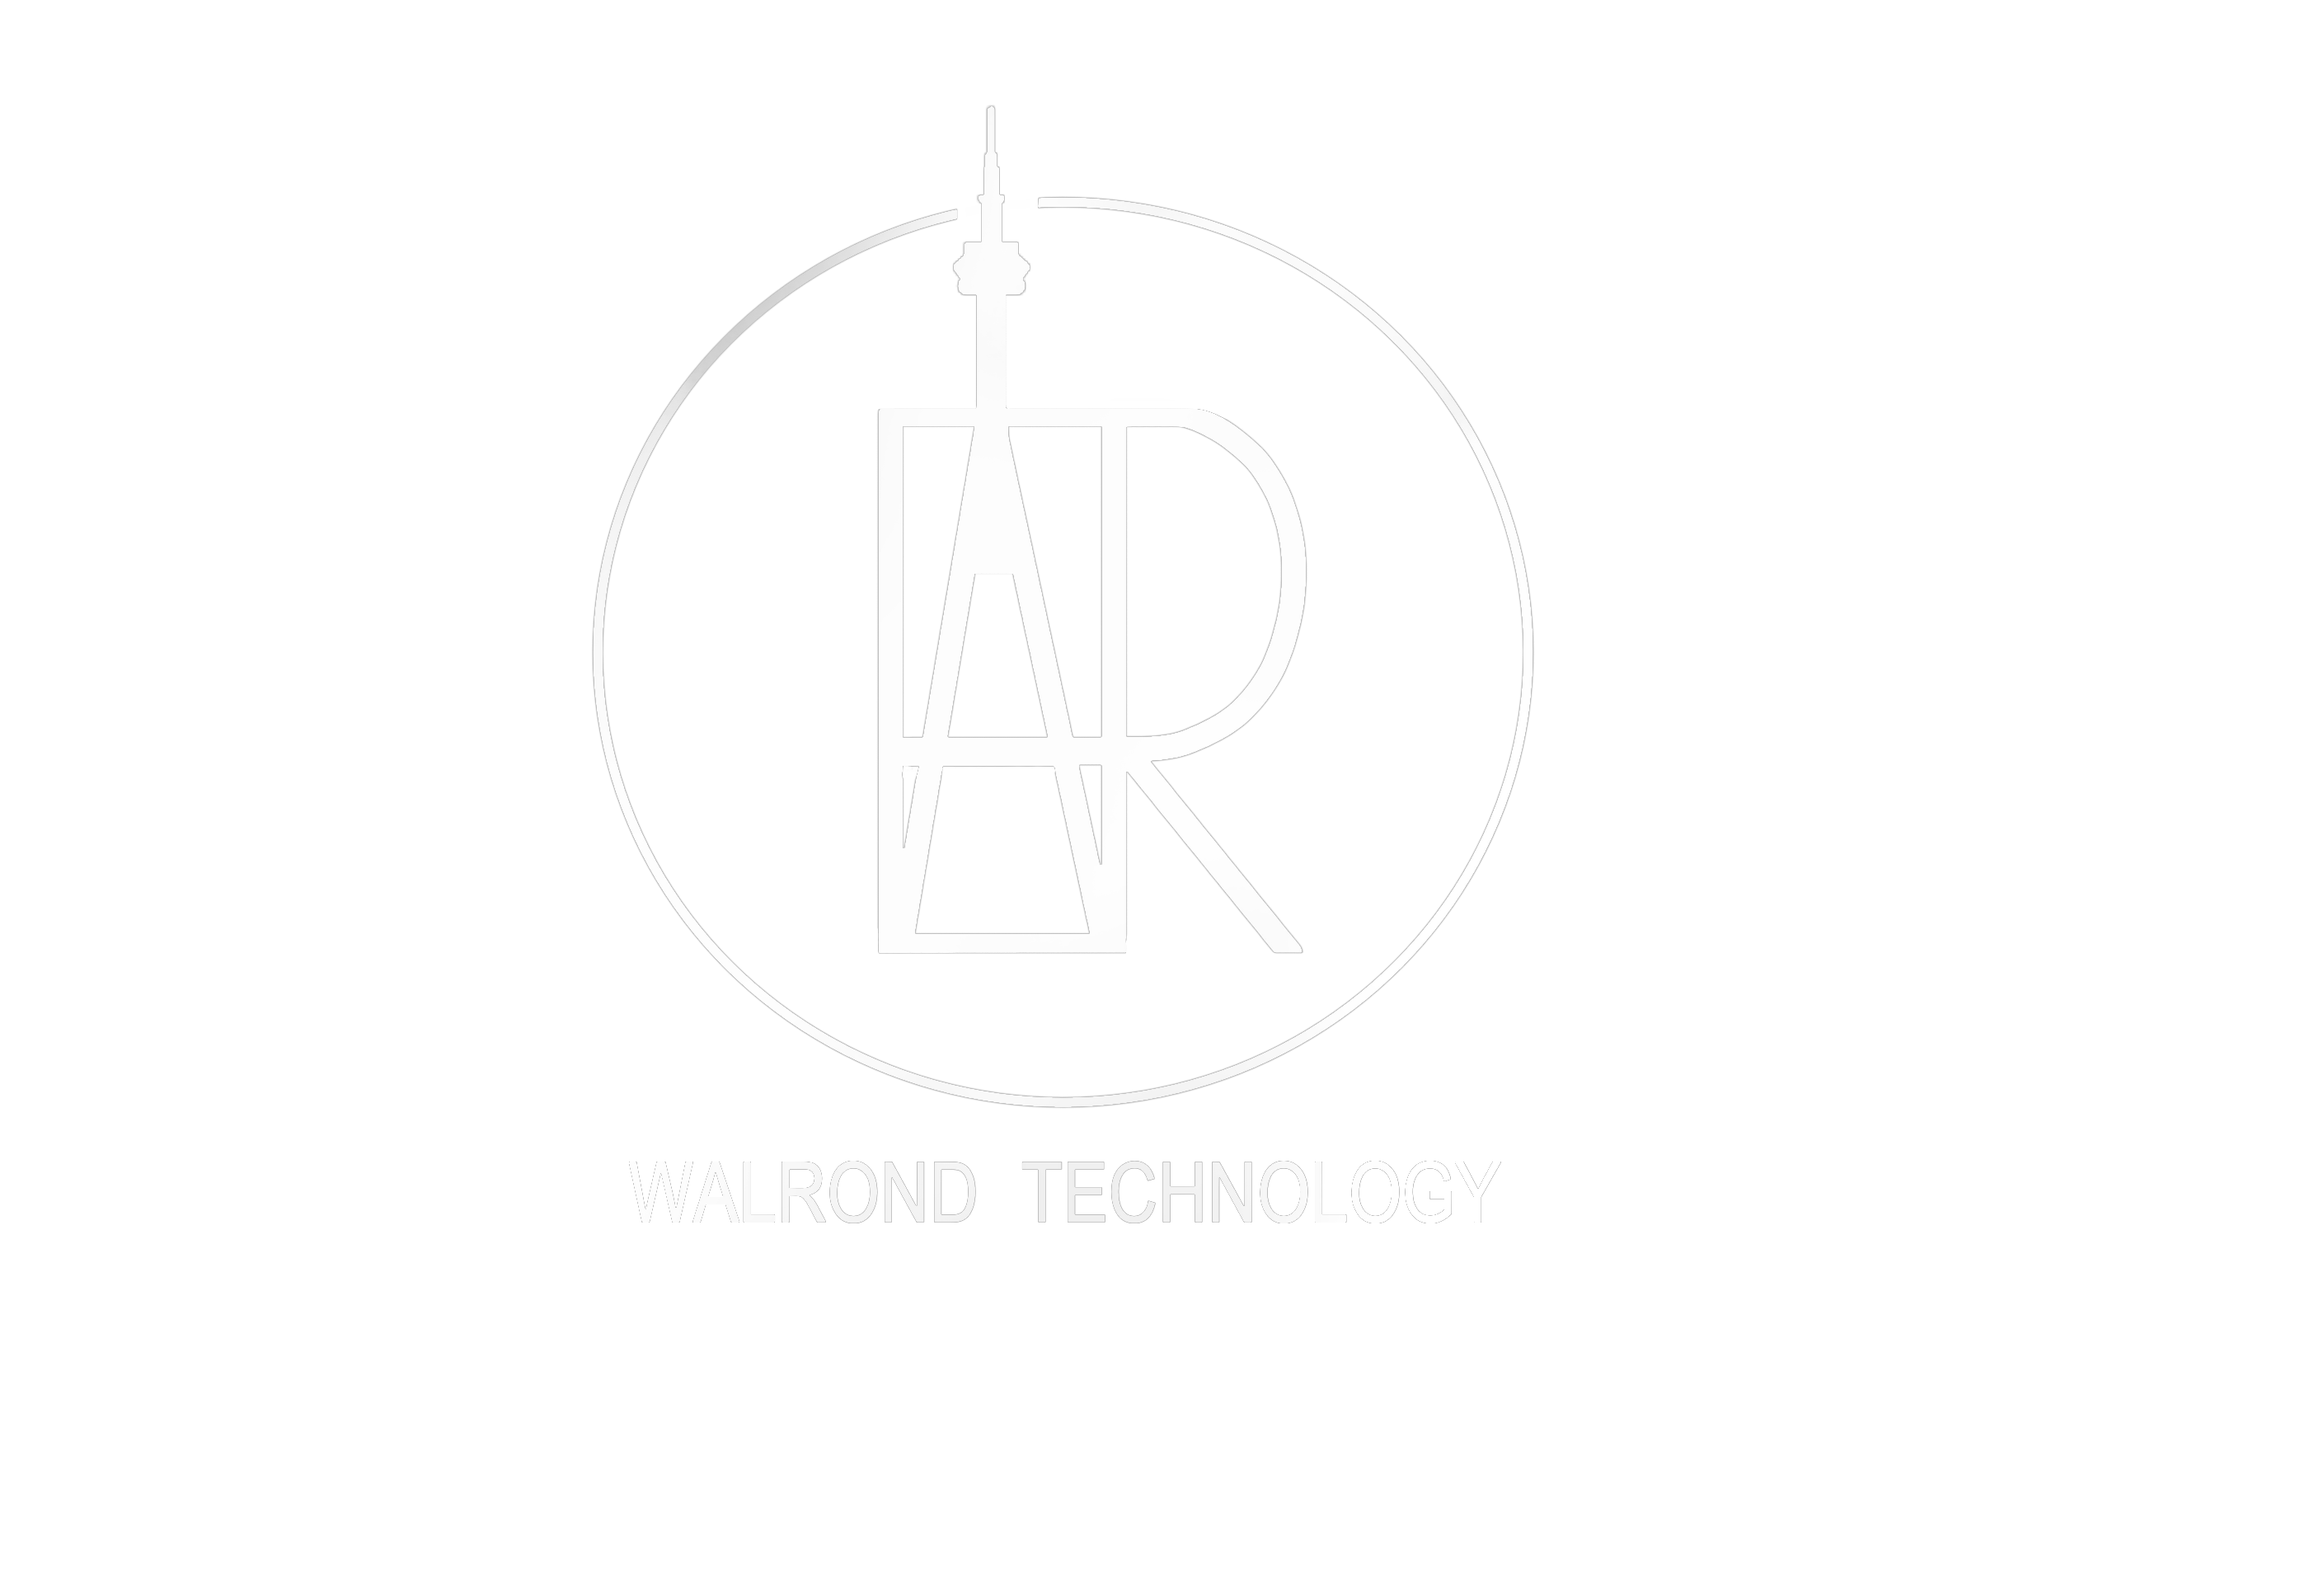 Walrond Technology, we make tech easy.